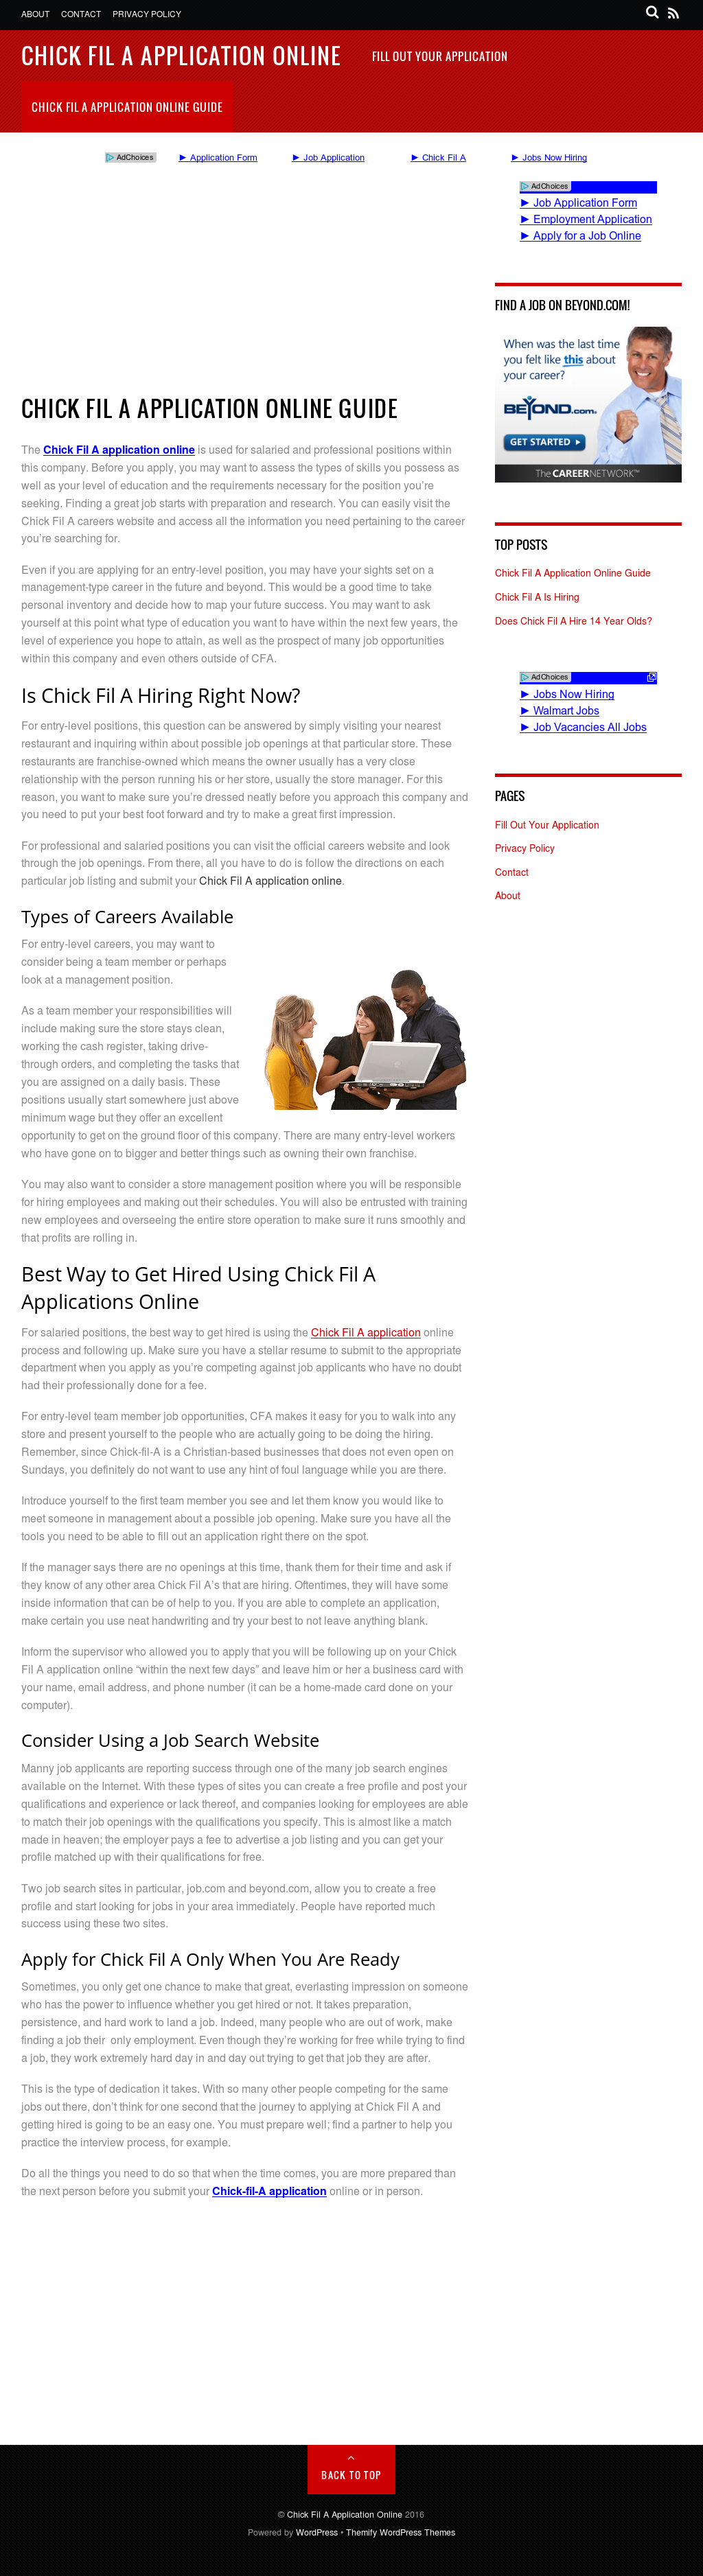 Chick Fil A Application Online Competitors, Revenue and Employees ...